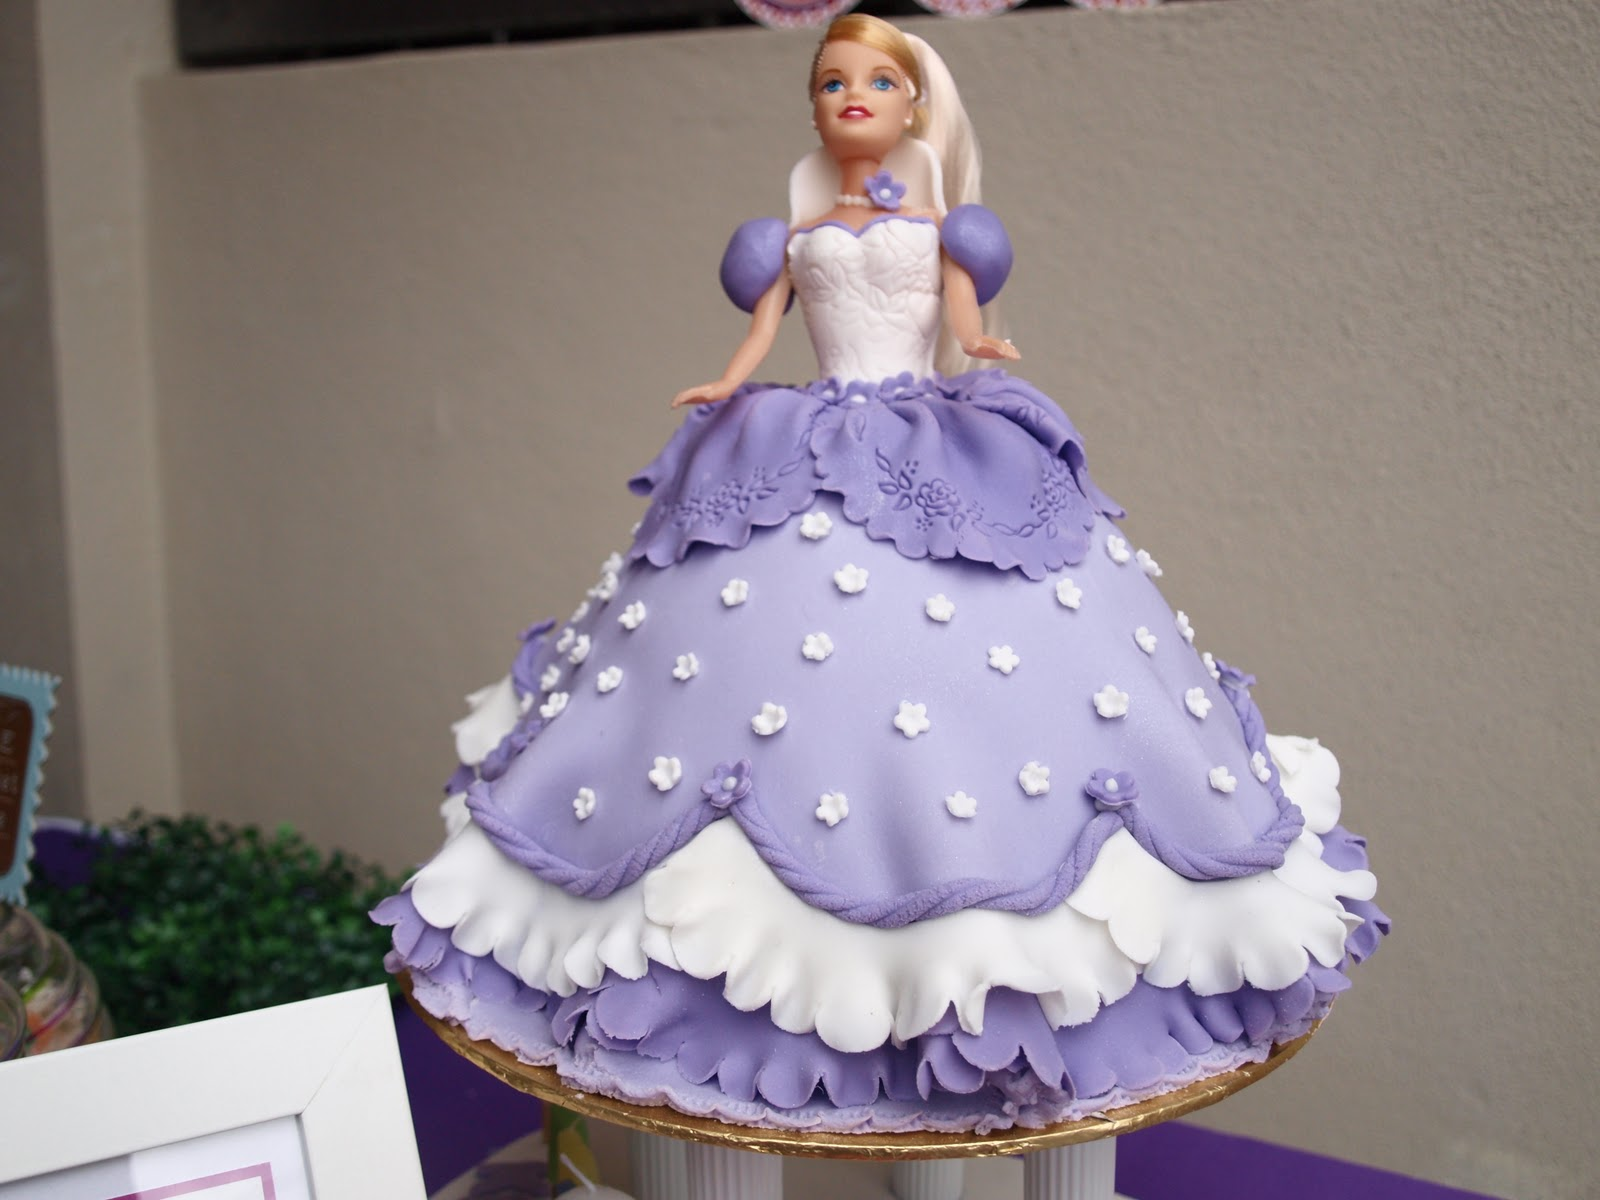 Cake Decoration Doll : barbie doll cake decoration idea 2 Barbie Doll Cakes ...